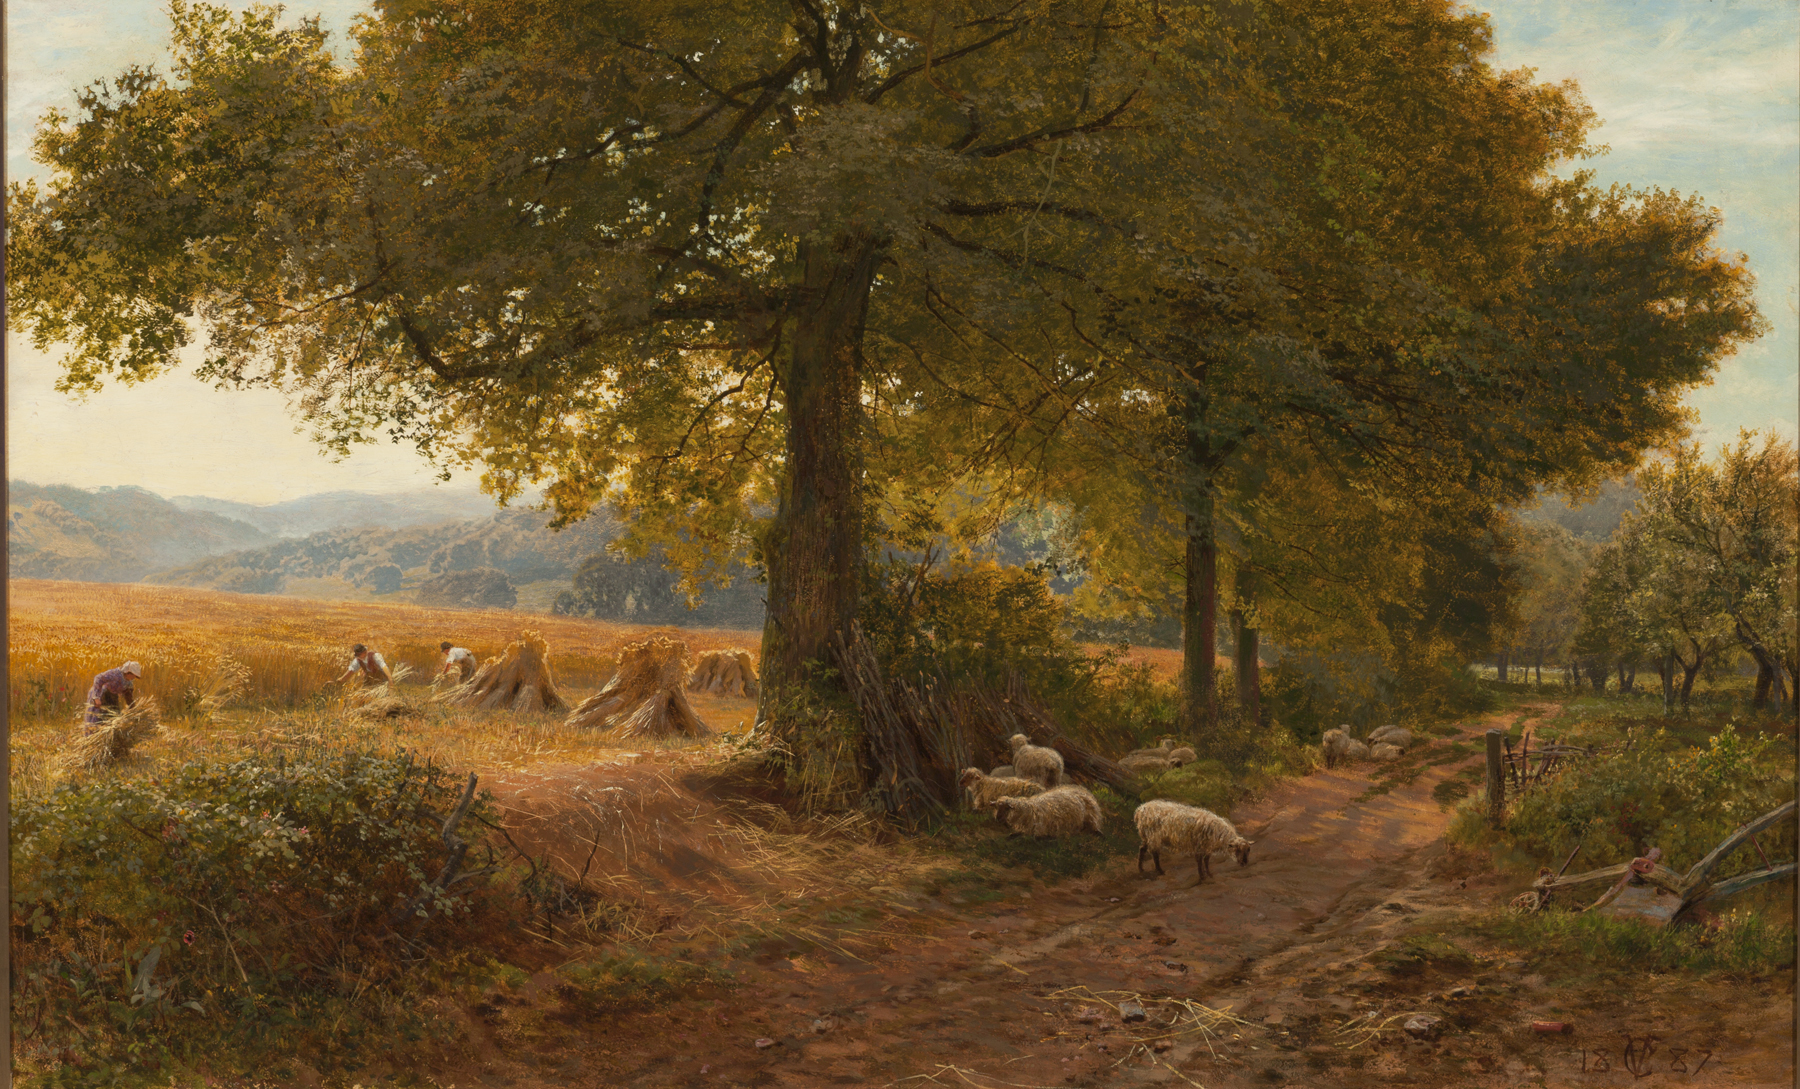 George Vicat Cole (English, 1833–1893), At Arundel, Sussex, 1887. Oil on canvas, 32 1/2 × 52 1/16 in. (82.55 × 132.24 cm). Milwaukee Art Museum, Layton Art Collection, Gift of J.M. Durand. L1888.17 Photo credit: John R. Glembin